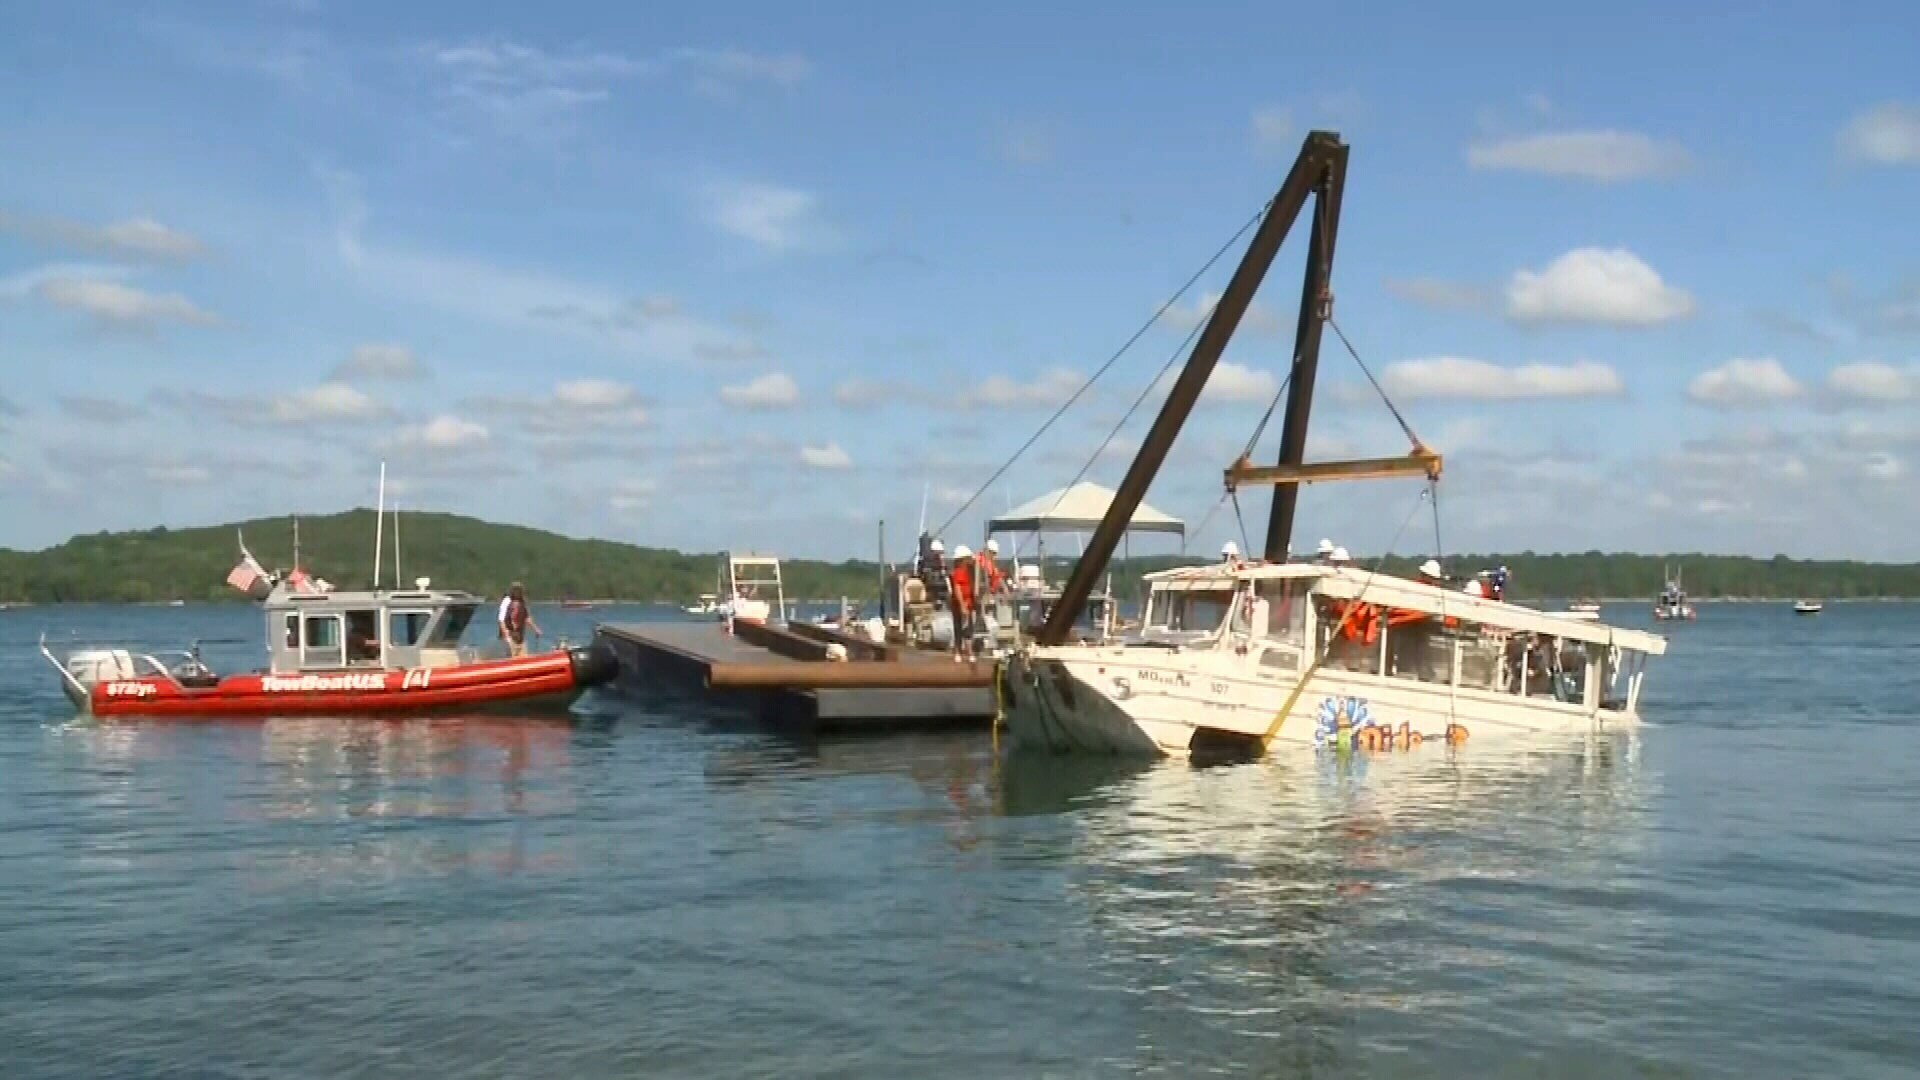 The duck boat that sank in Table Rock Lake in Branson, Mo. is raised Monday, July 23, 2018. The boat went down Thursday evening.